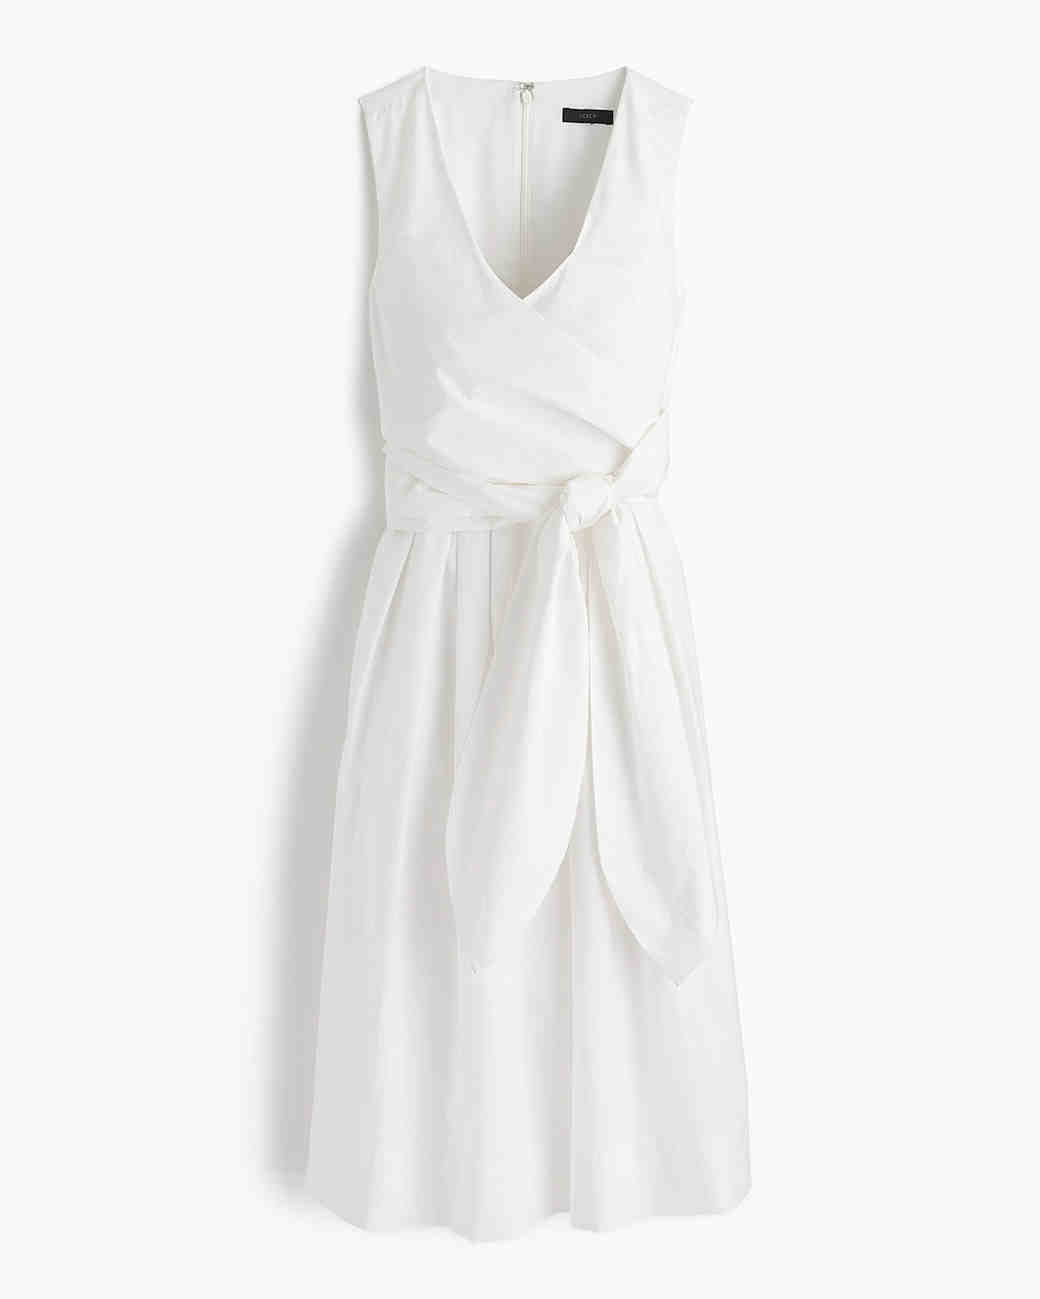 bridal-shower-dress-j-crew-wrap-dress-0416.jpg